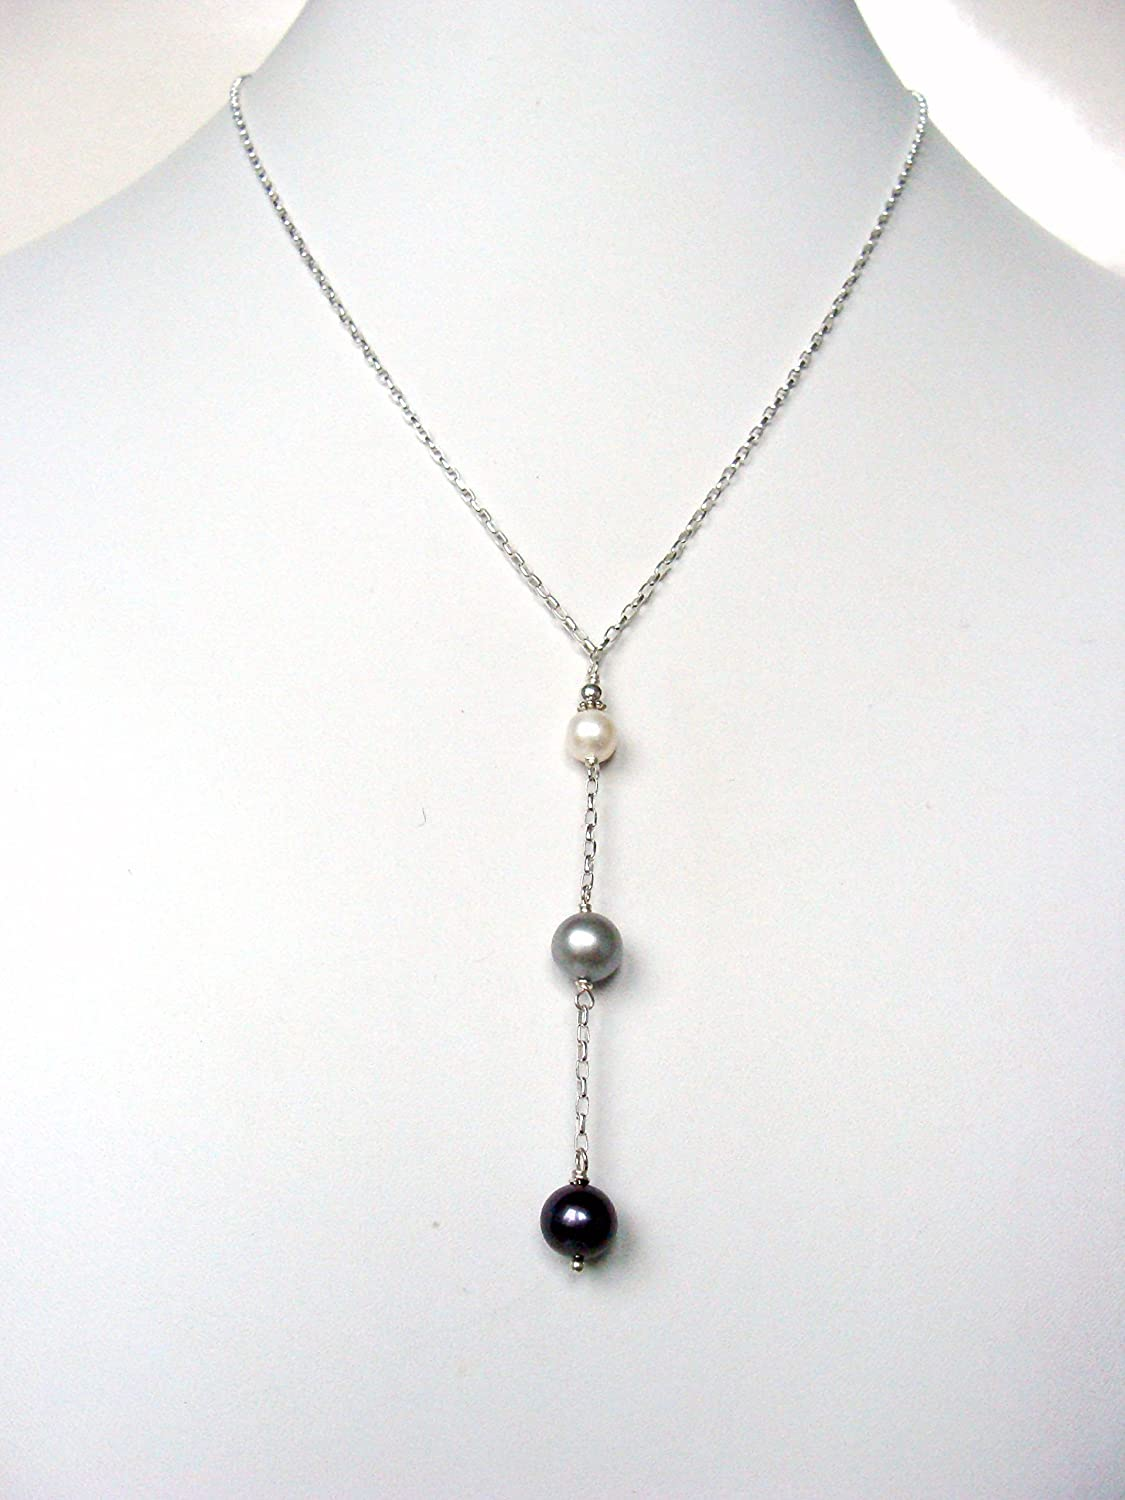 f6a98674dae4a Amazon.com: Lariat style pearl necklace, white silver black pearls ...